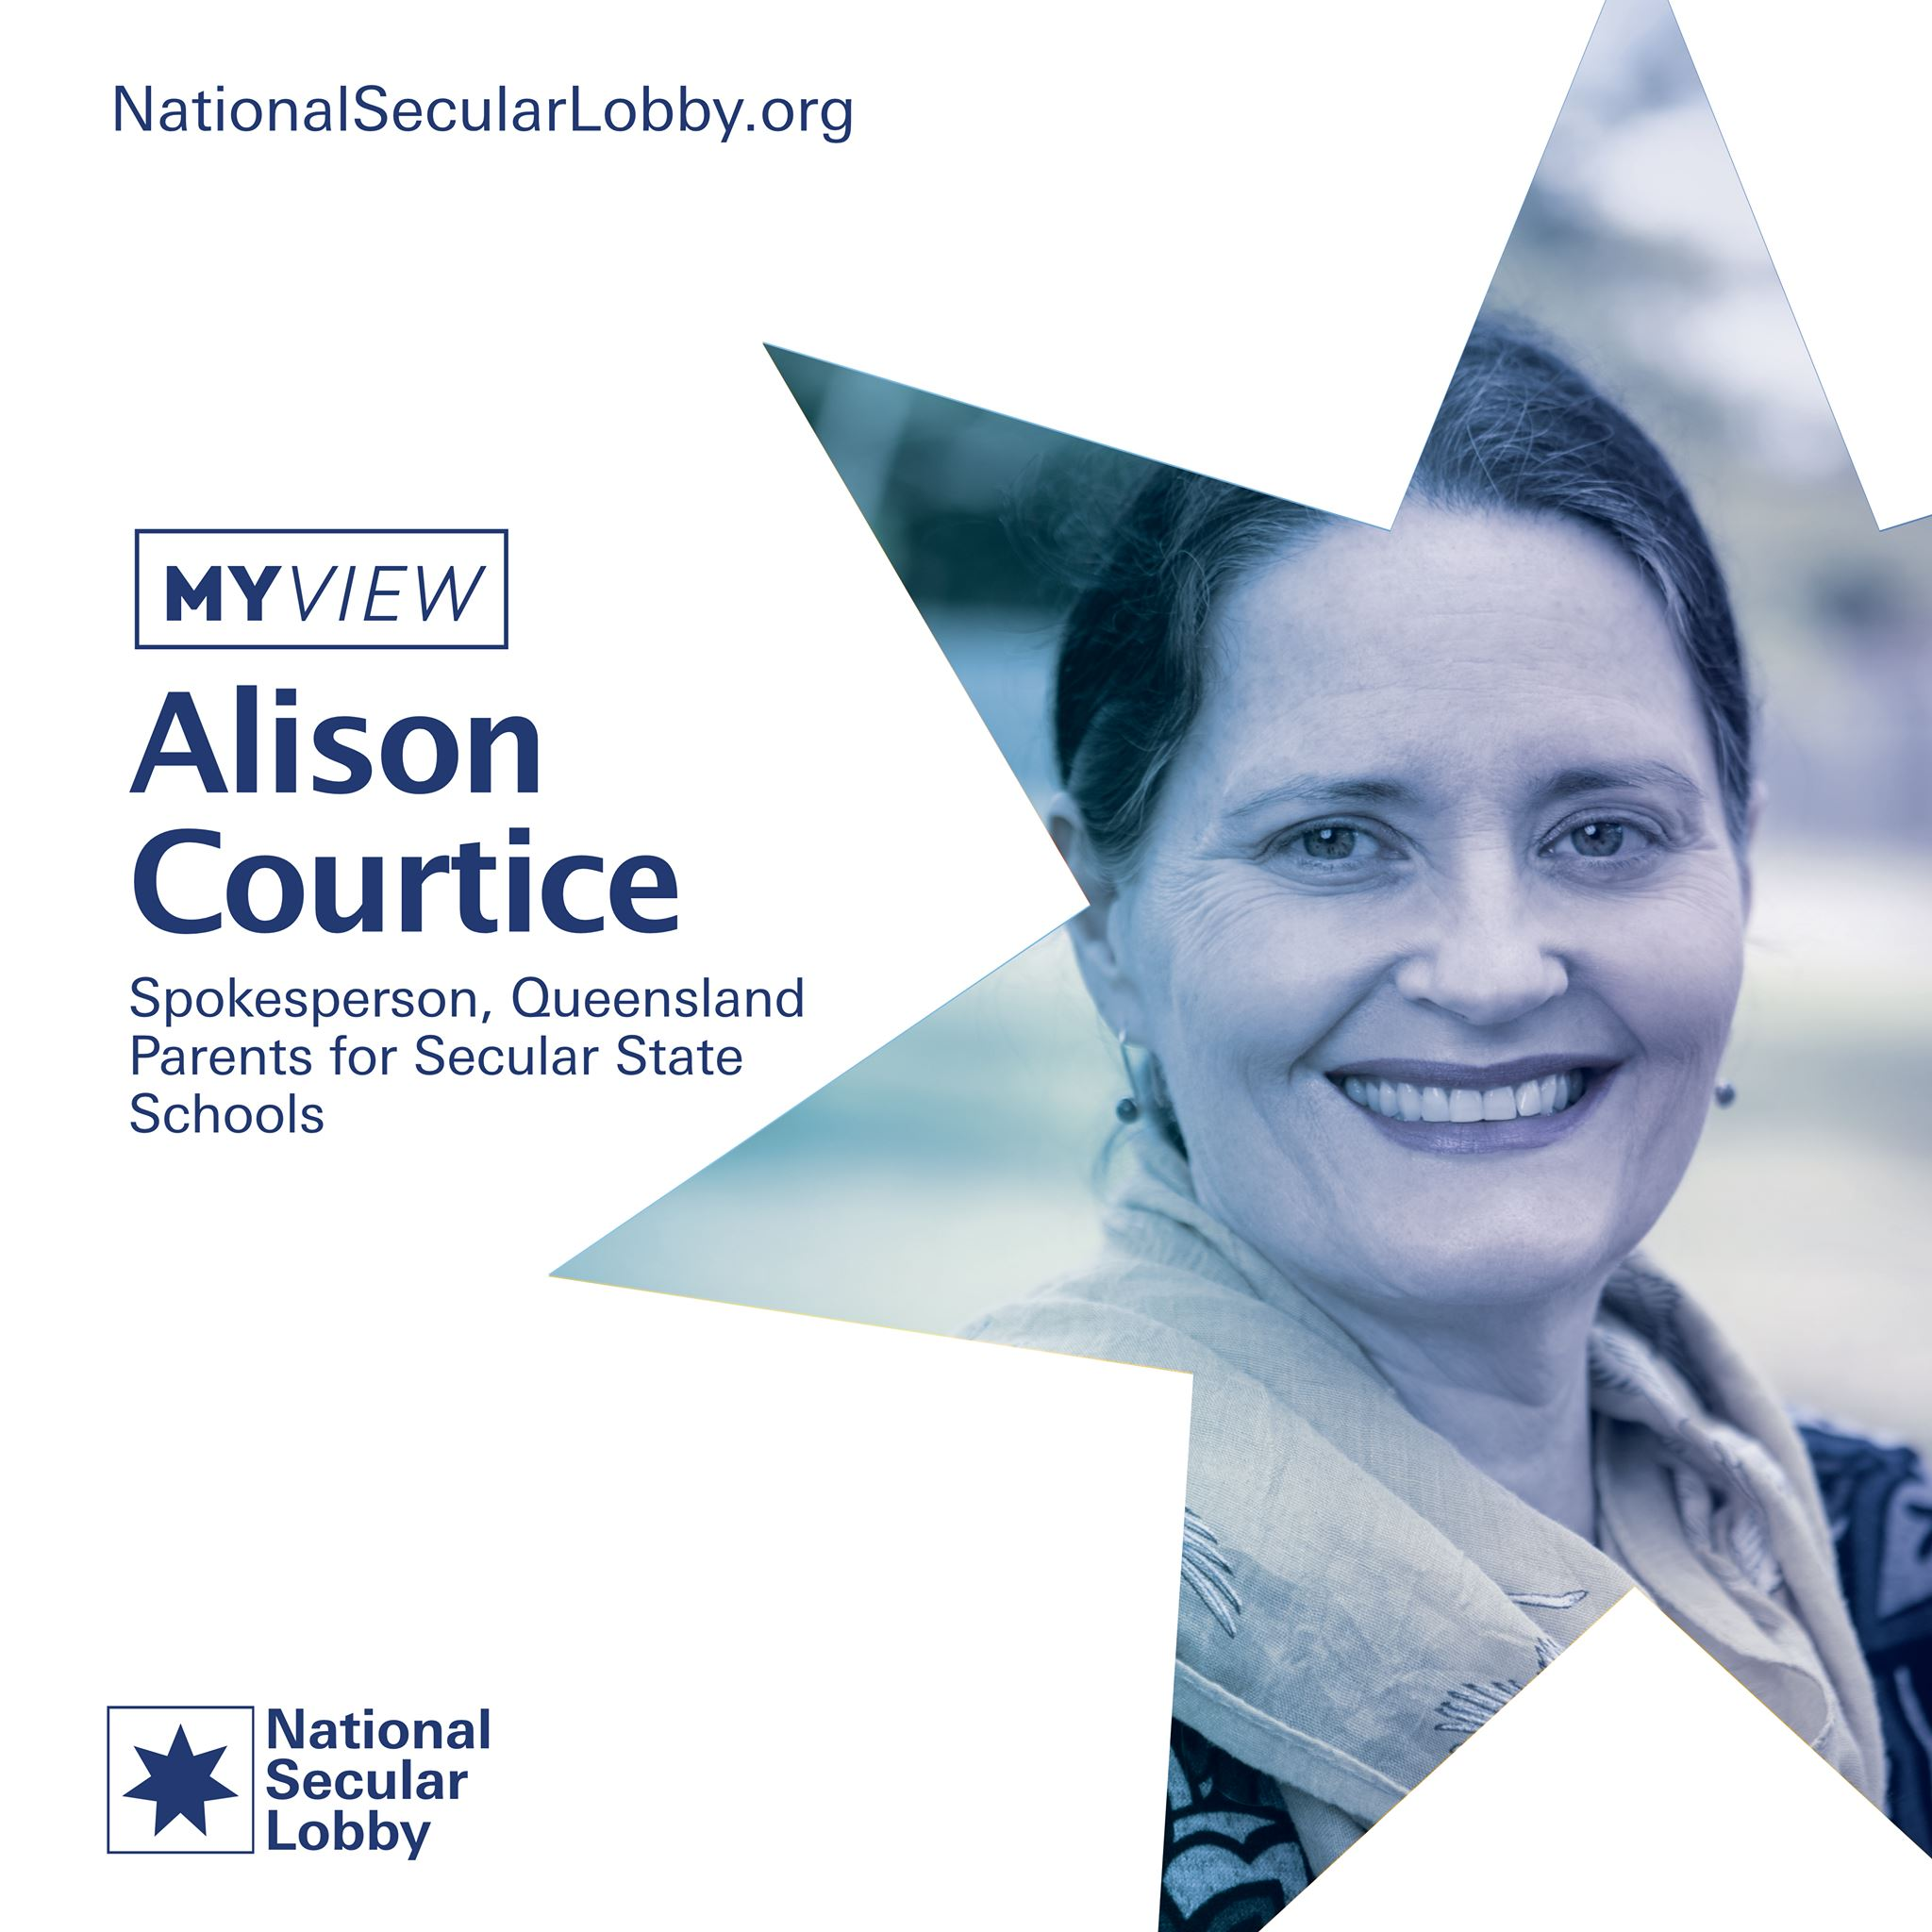 Alison Coutrice